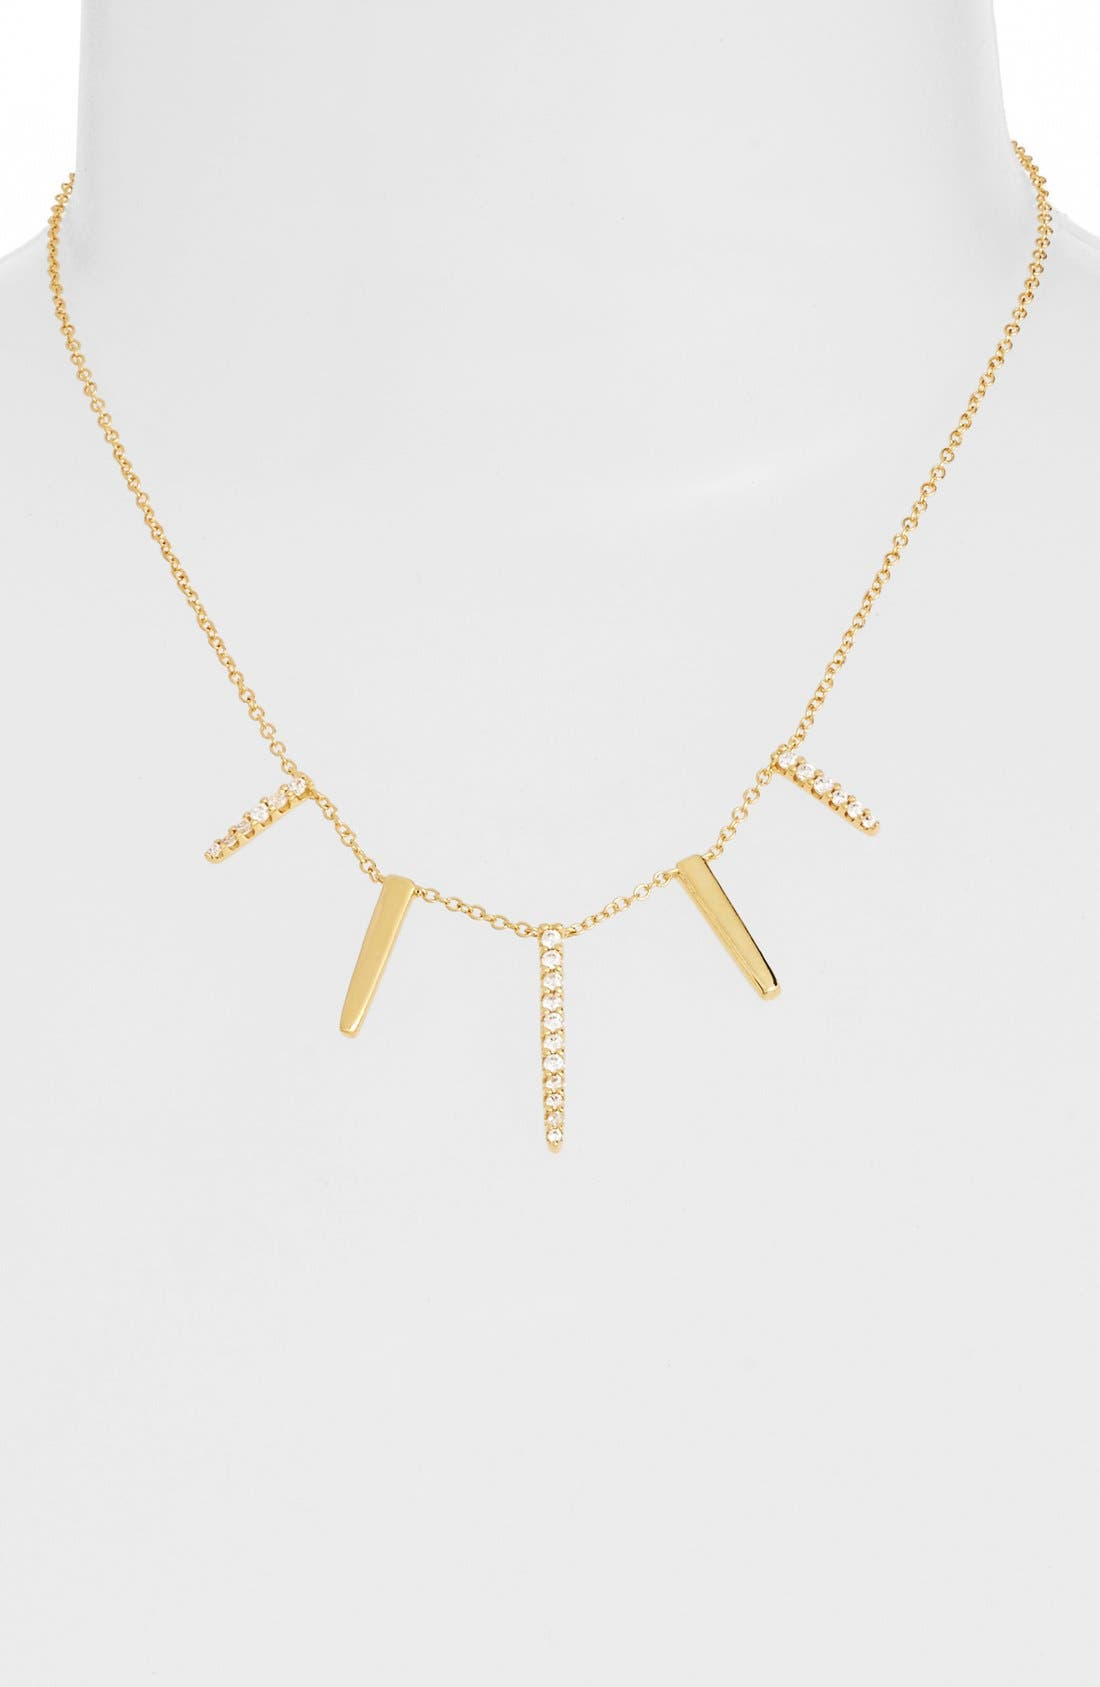 Pavé Spike Cubic Zirconia Frontal Necklace,                         Main,                         color, Gold